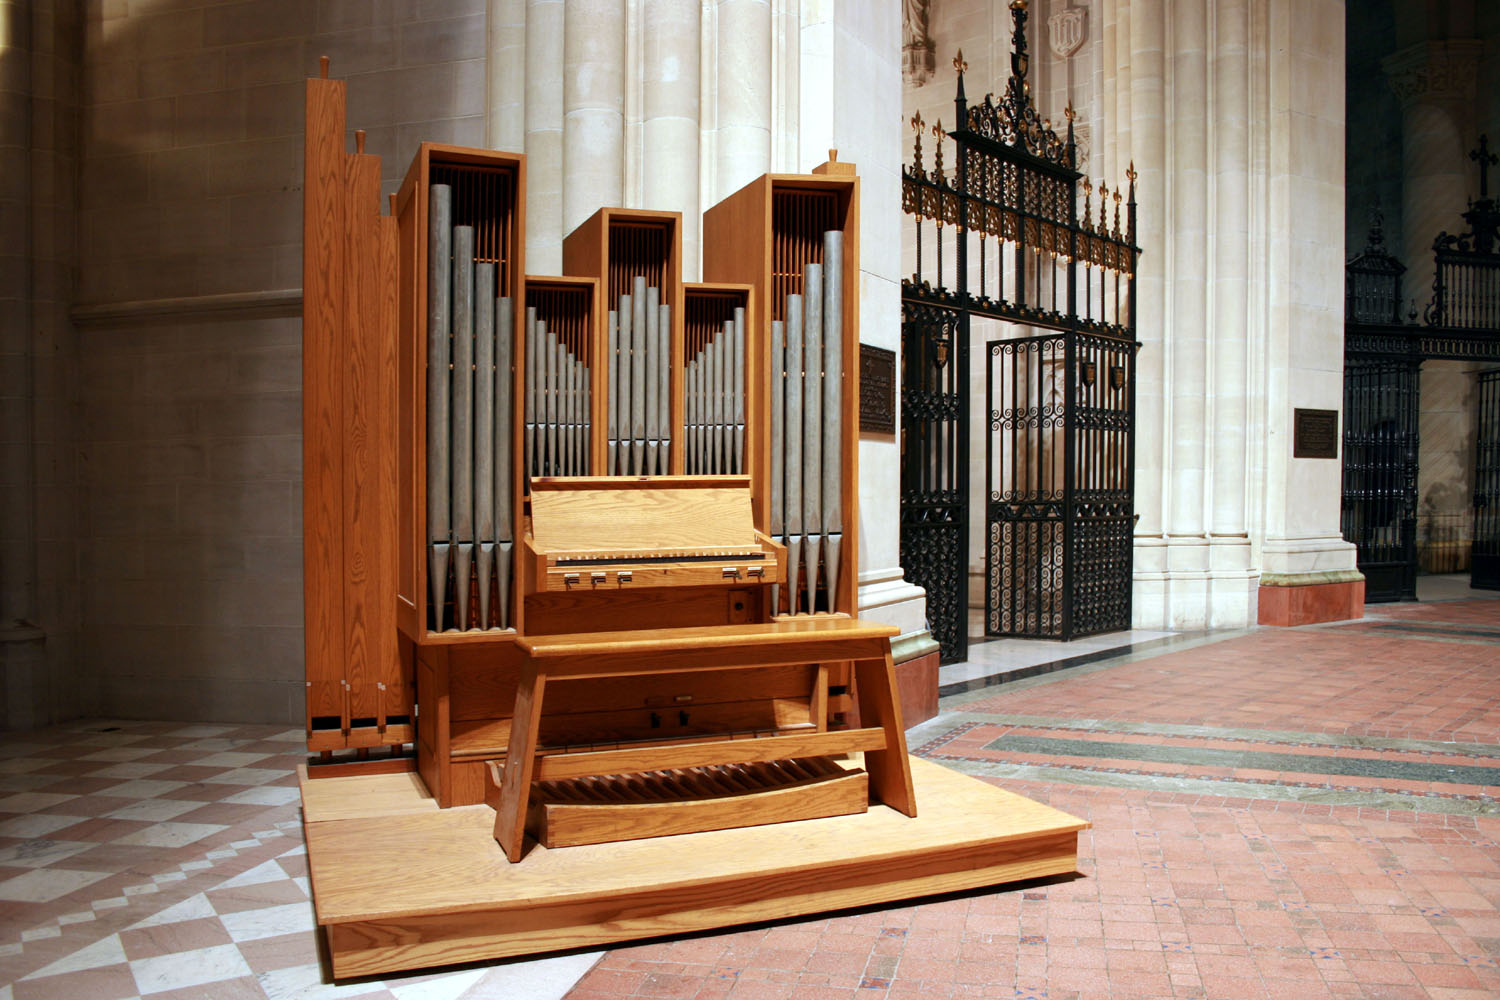 Casavant Frères Organ, Op. 3130 (1971) in the Cathedral of St. John the Divine - New York City (photo: Steven E. Lawson)